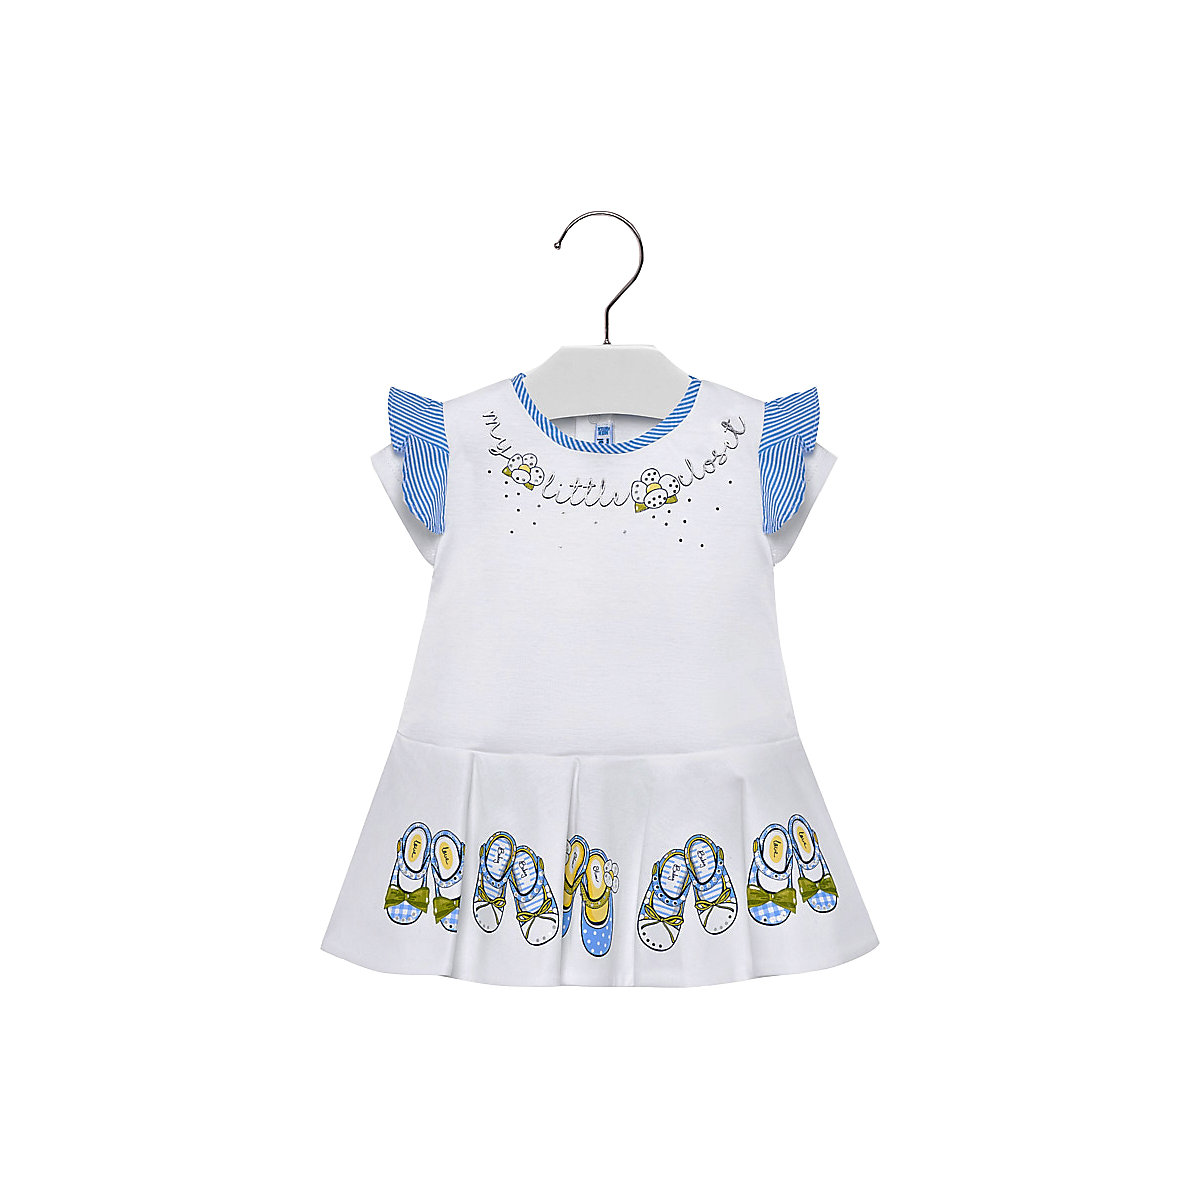 MAYORAL Dresses 10681475 Girl Children fitted pleated skirt White Cotton Casual Print Knee-Length Short Sleeve